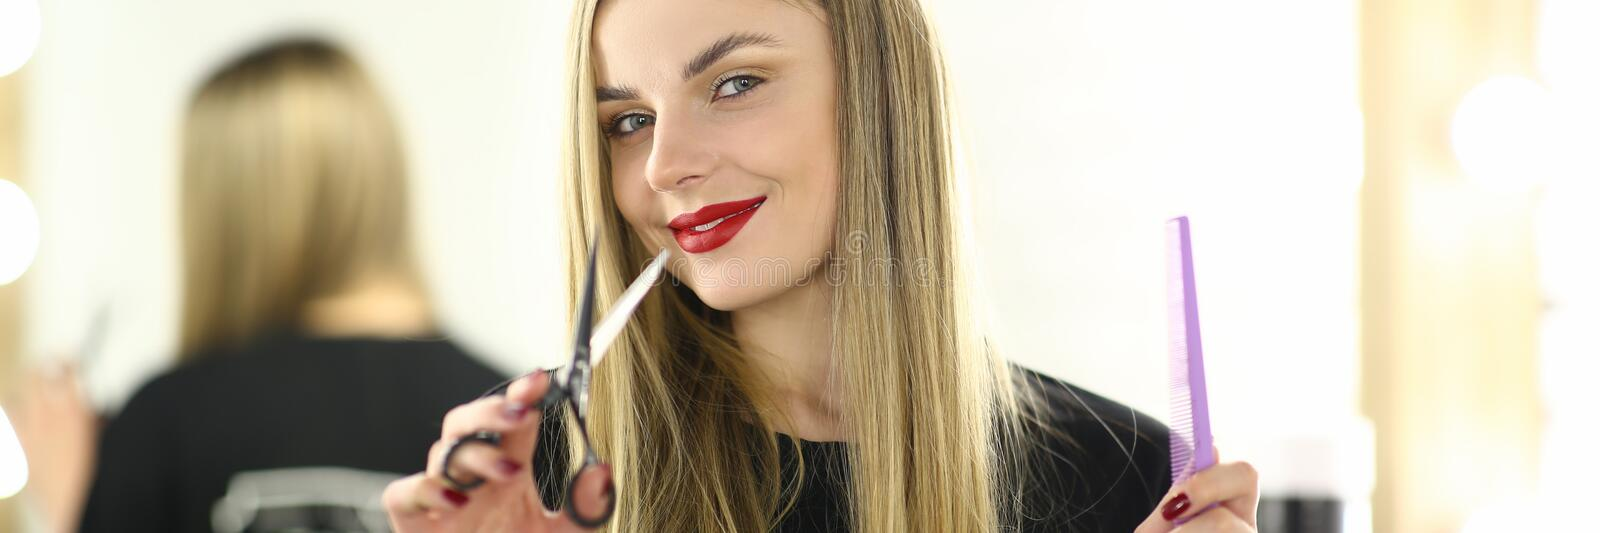 Woman Hairstylist with Comb and Scissors in Hands royalty free stock photography